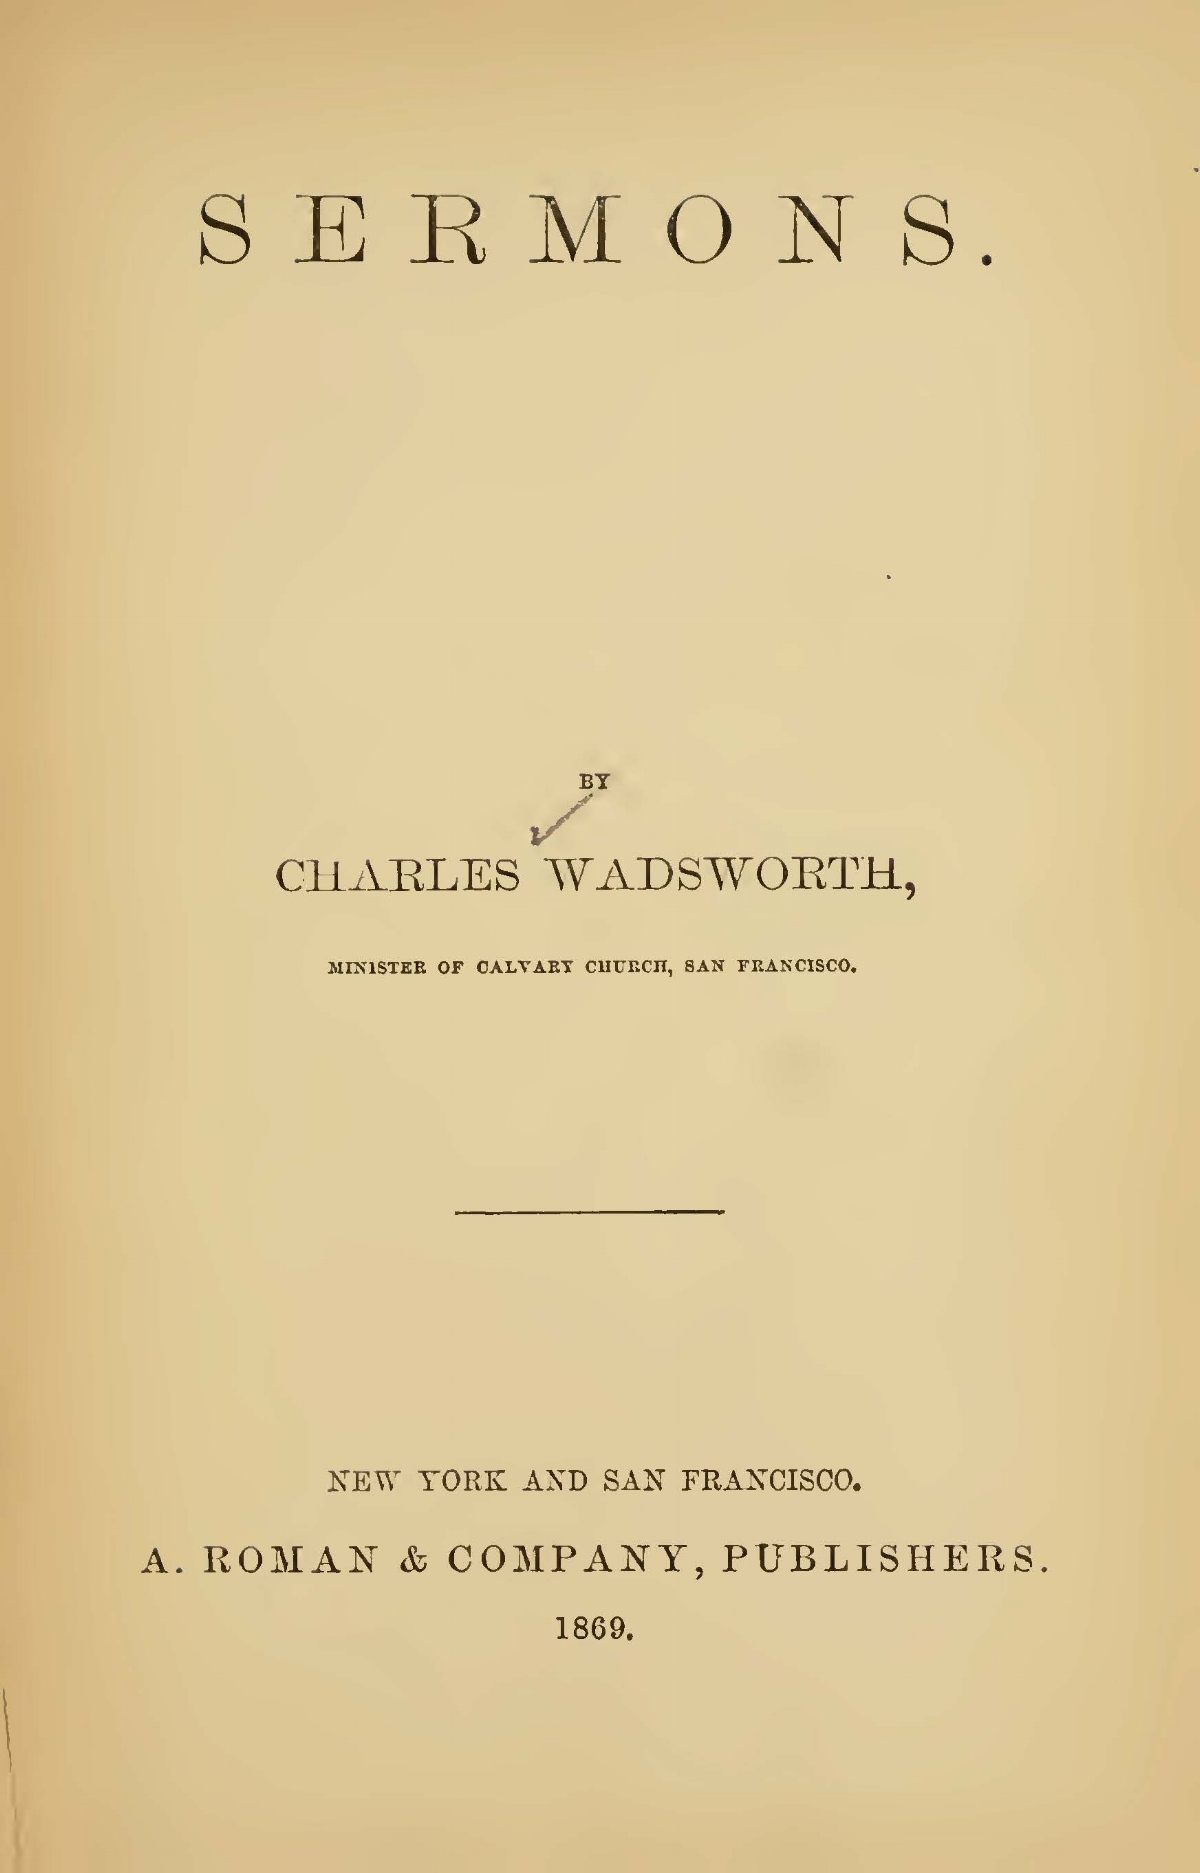 Wadsworth, Charles, Sermons 1869 Title Page.jpg